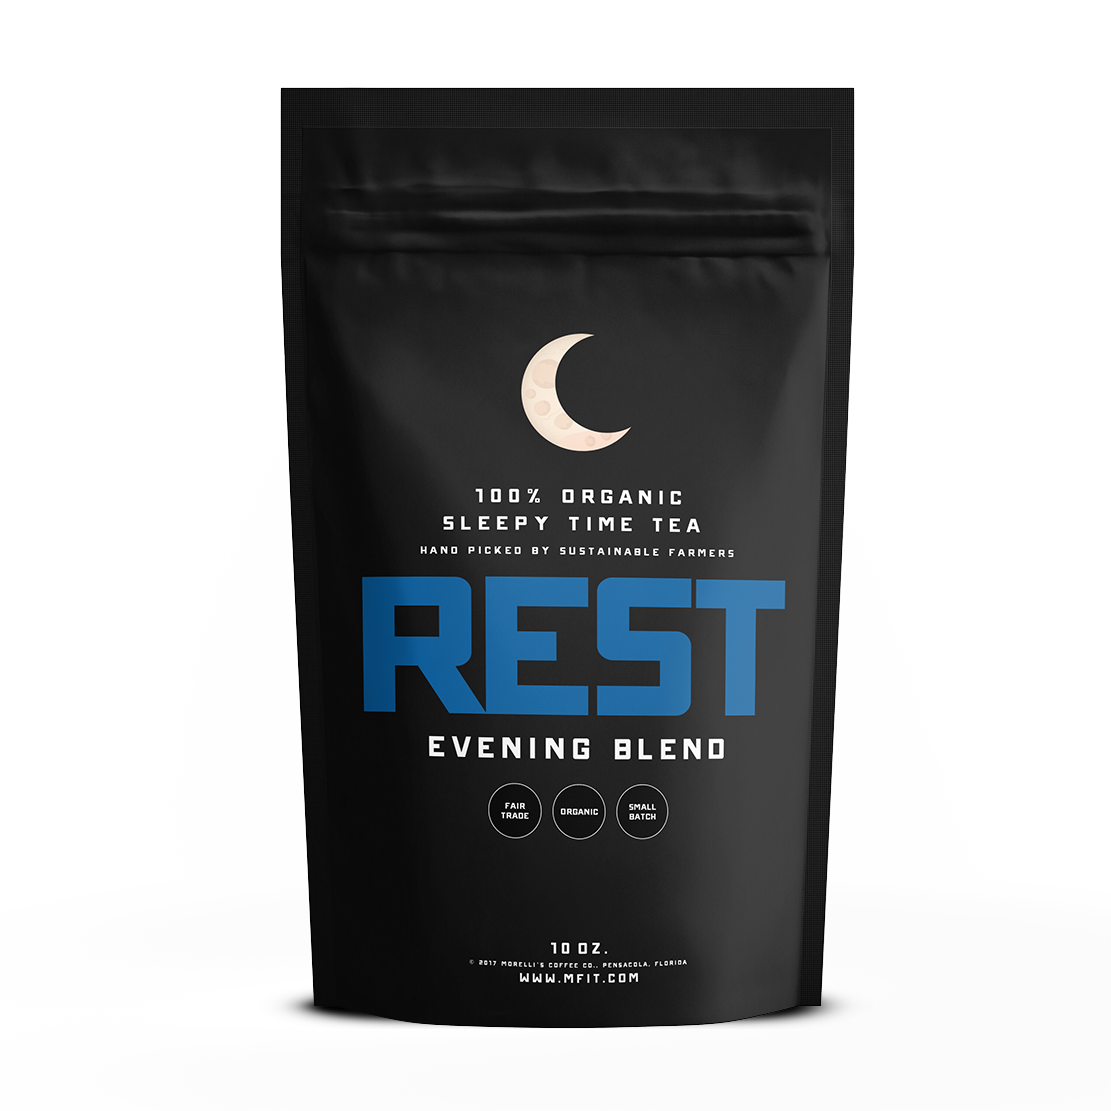 REST - Natural Sleep Aid - 100% Organic Tea - MorelliFit - Cleanest Sports Supplements & Nutrition on Earth